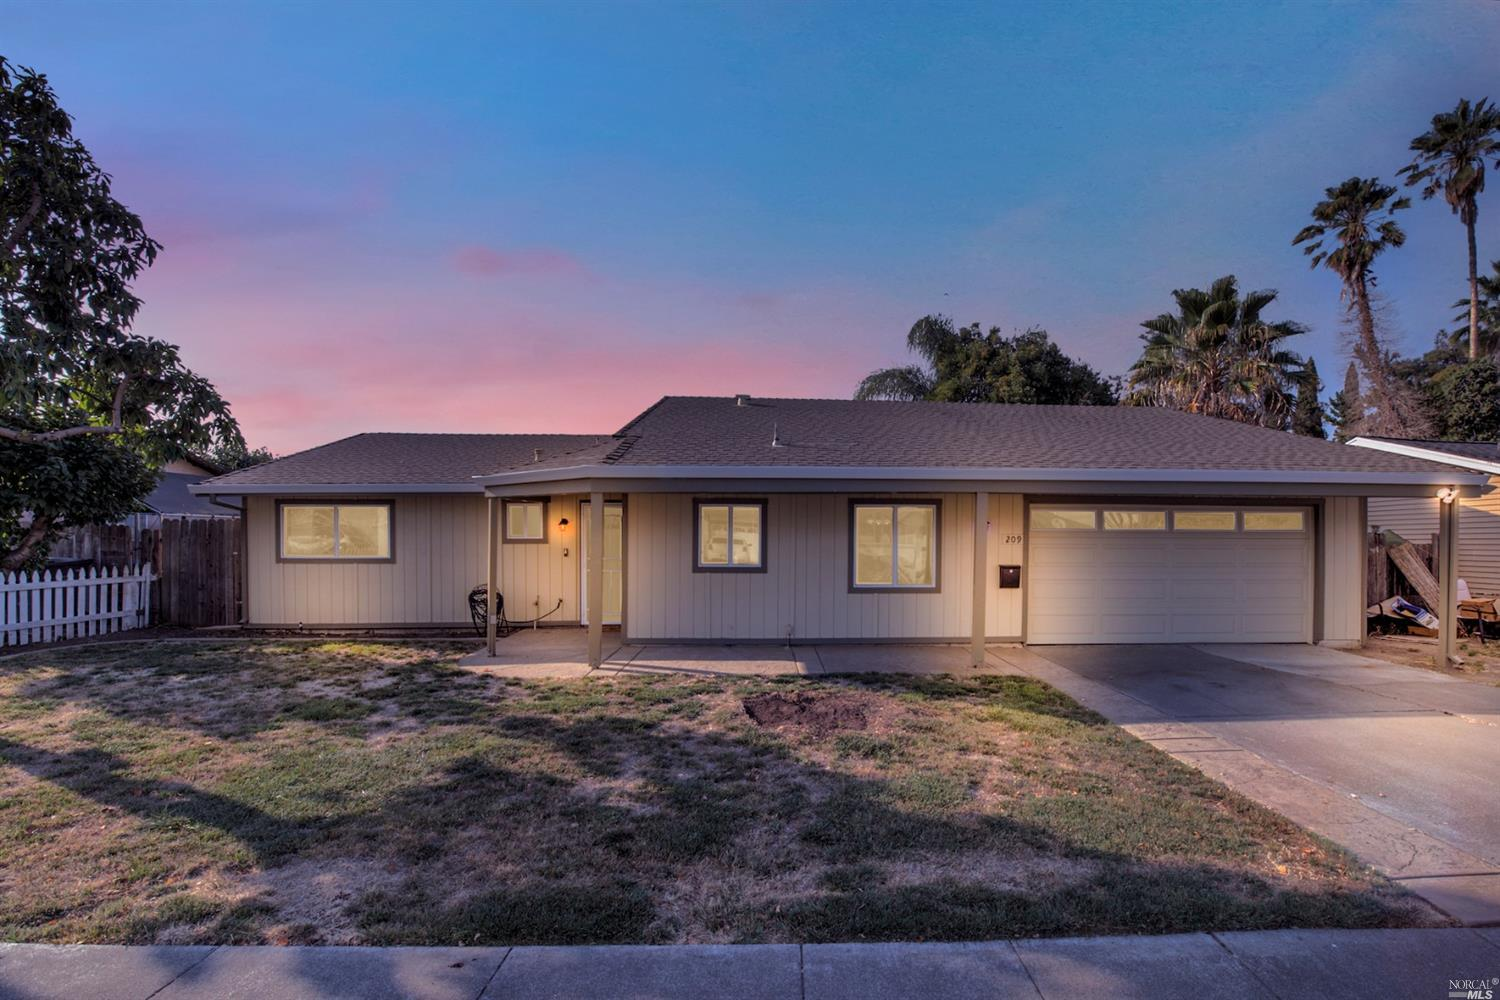 Lovingly maintained single story home located close to the Suisun slough waterfront. Fall in love wi